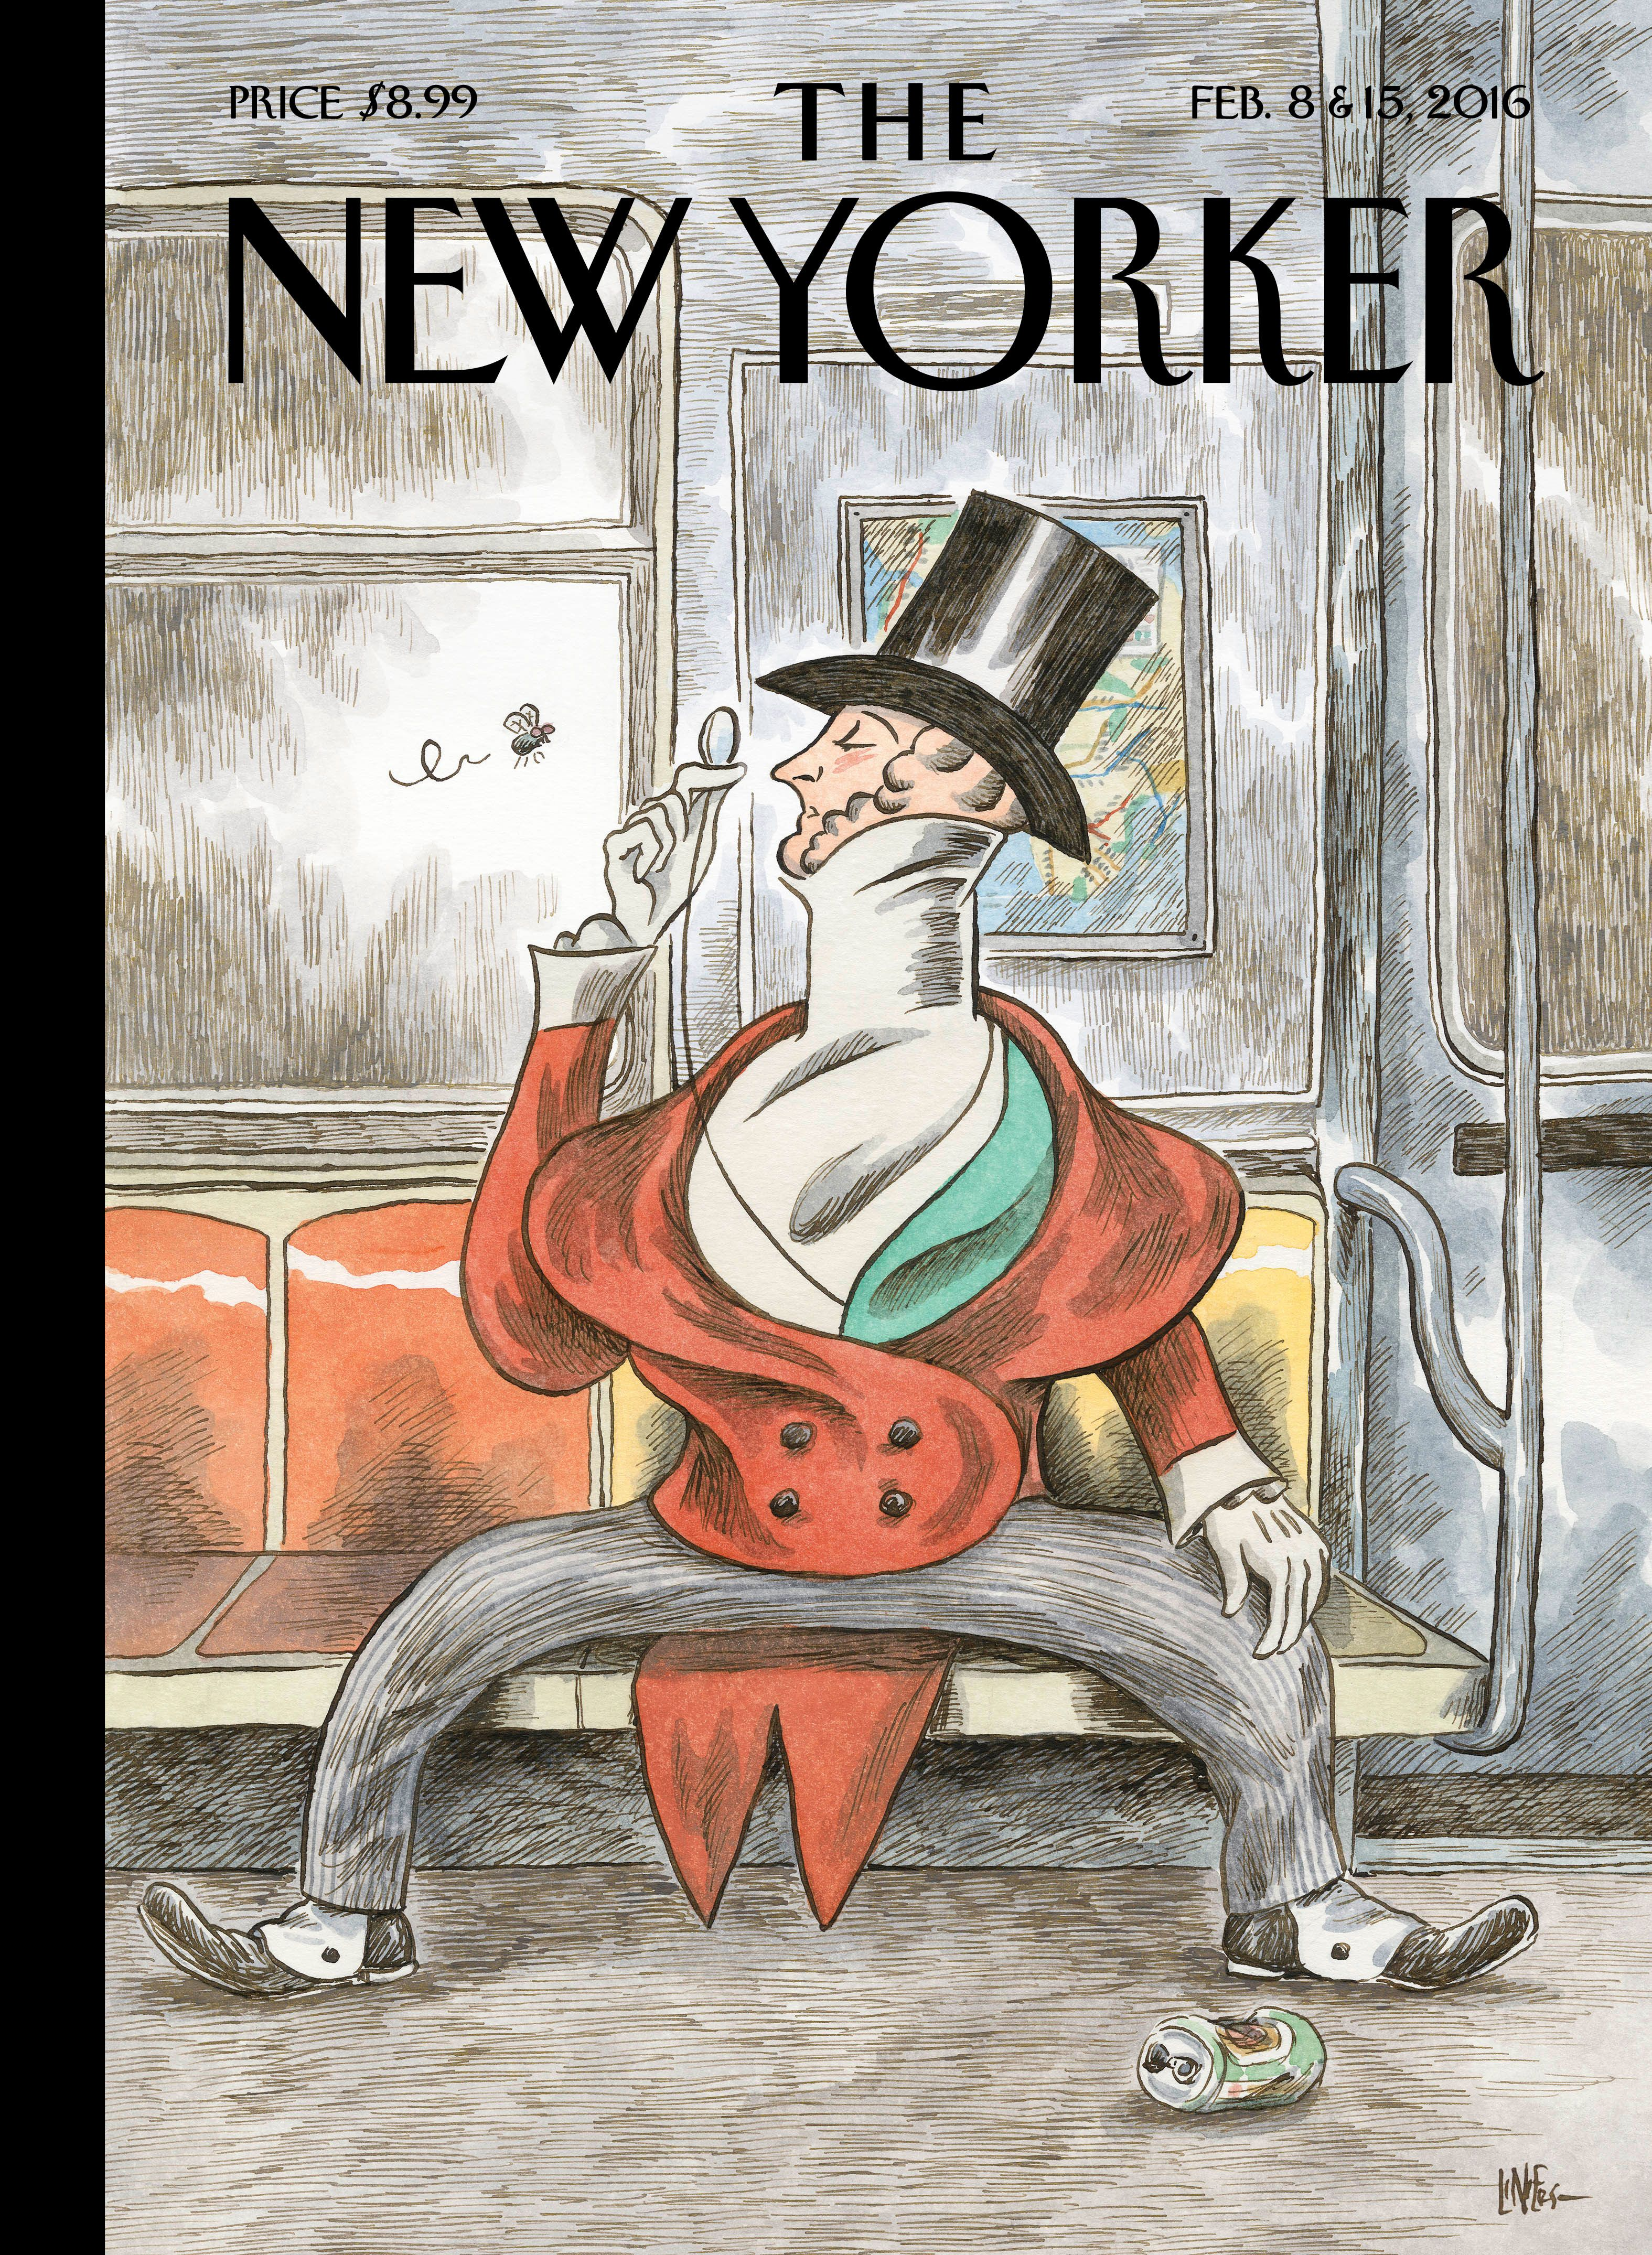 The New Yorker February 8 15 2016 Issue New Yorker Covers The New Yorker Book Cover Art